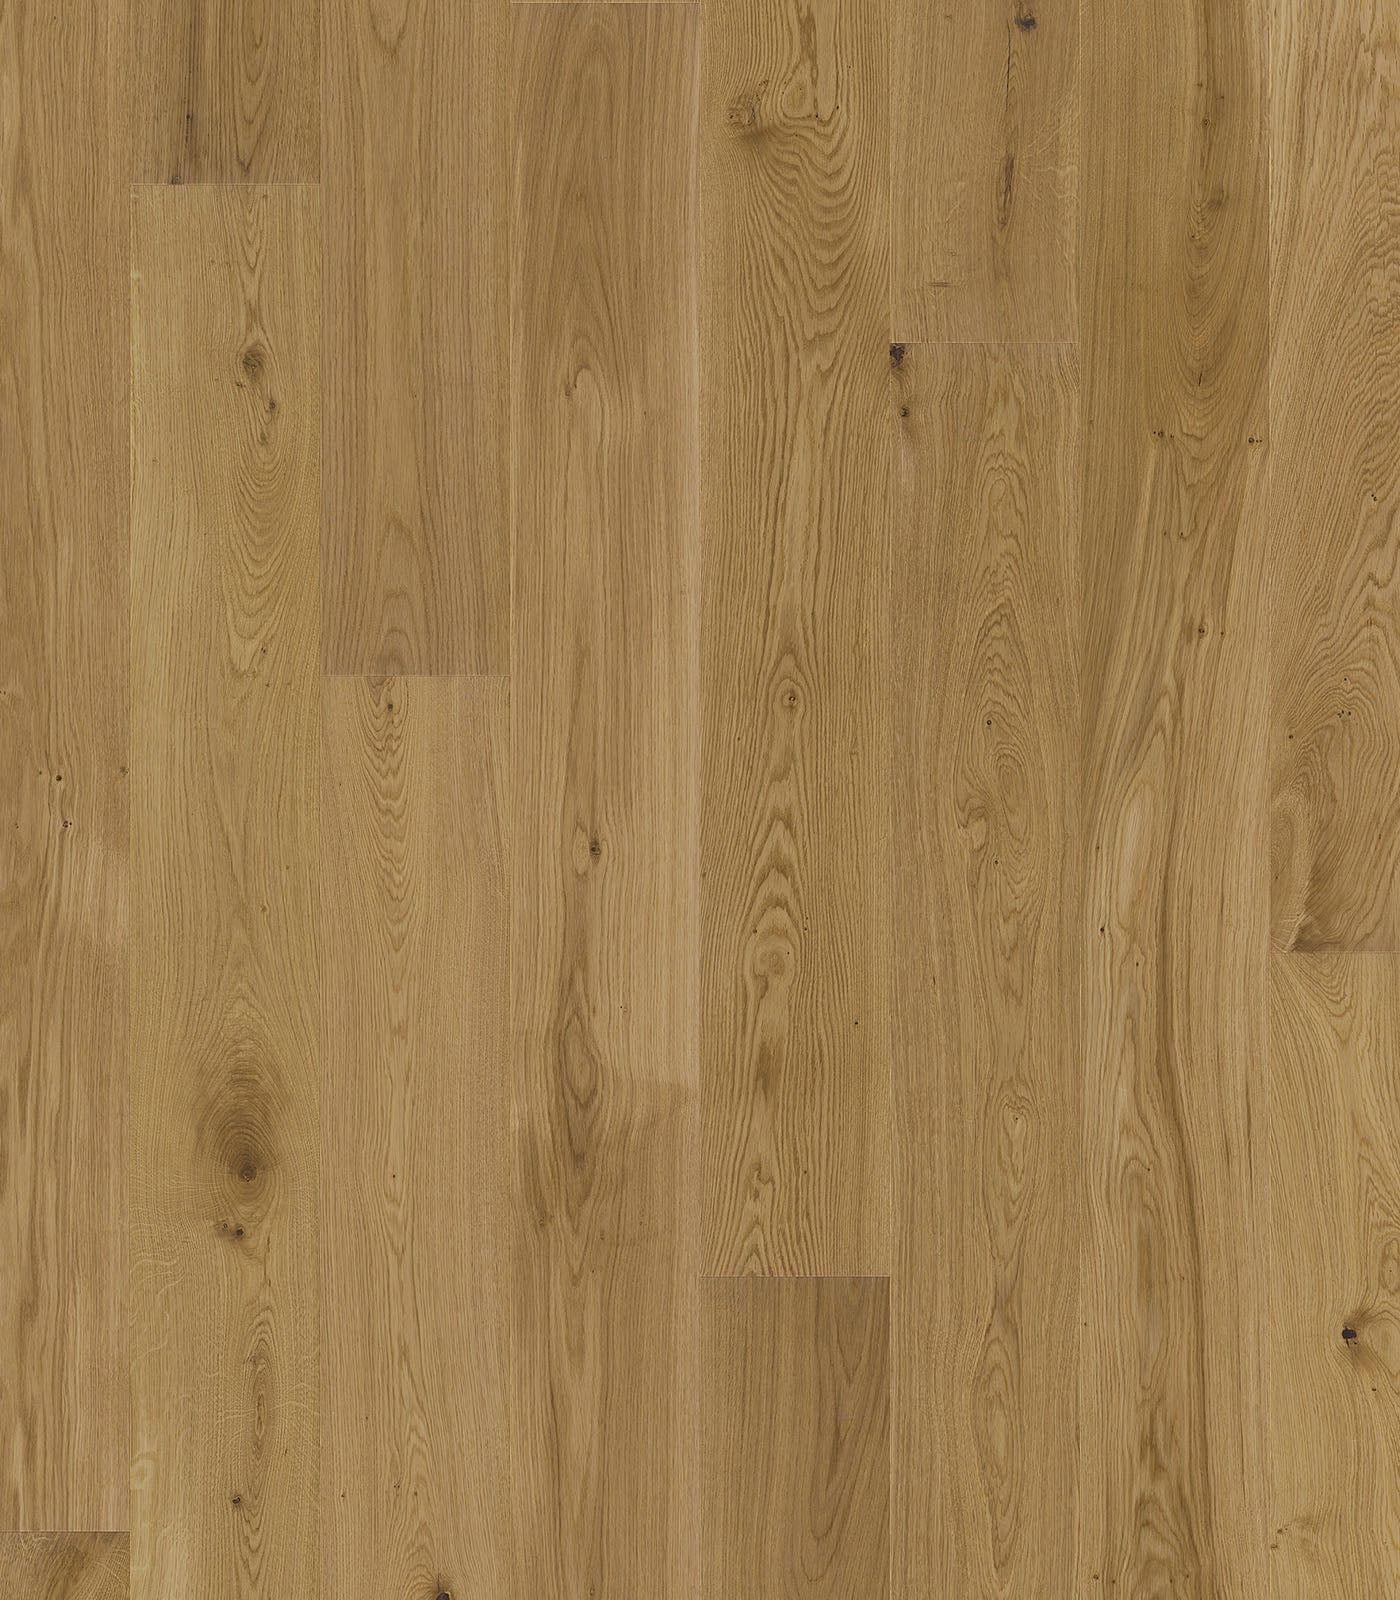 OAK RUSTIC - FRENCH OAK